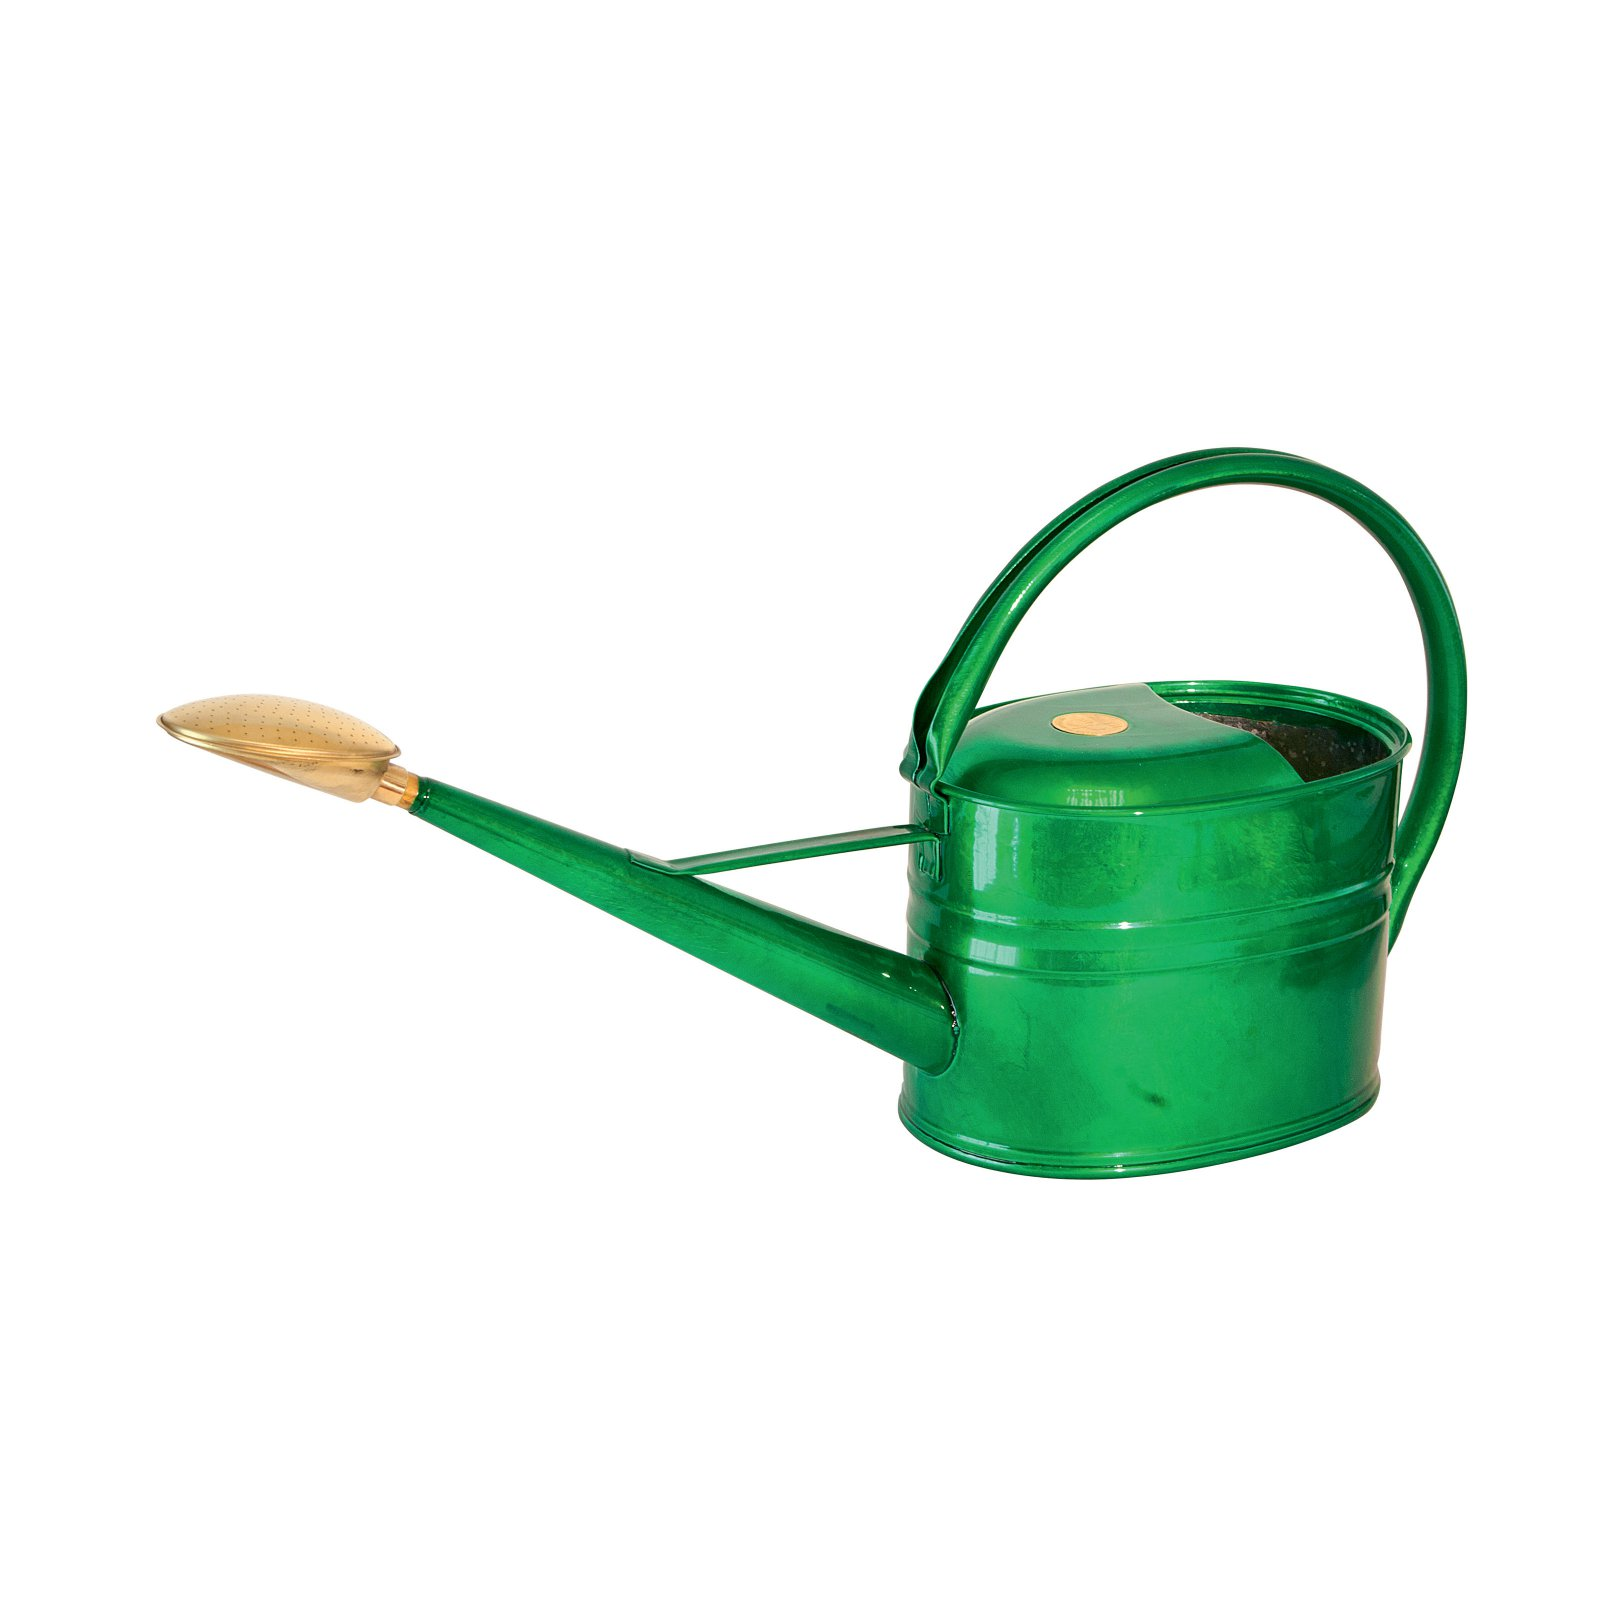 Haws Slimcan Metal 1.3 gal. Watering Can by Watering Cans